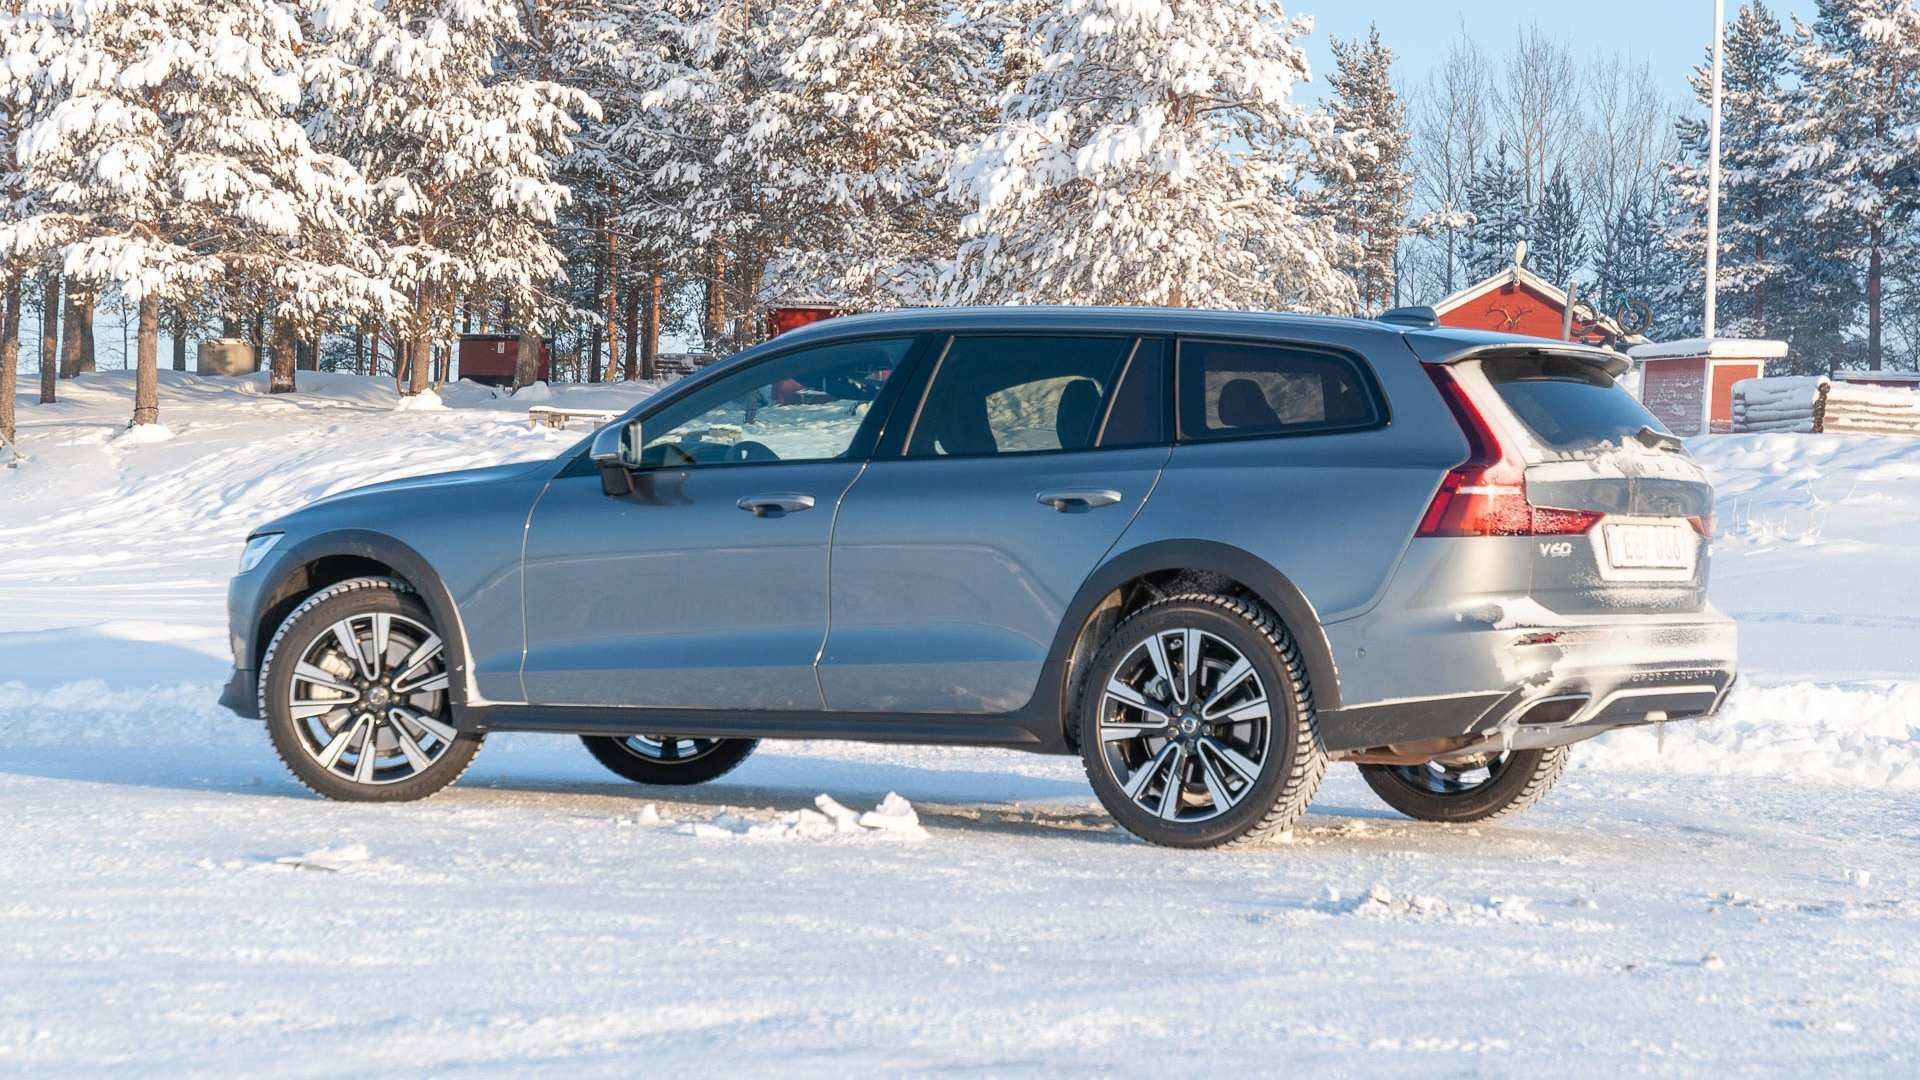 70 New Volvo V60 Cross Country 2020 Price and Review with Volvo V60 Cross Country 2020